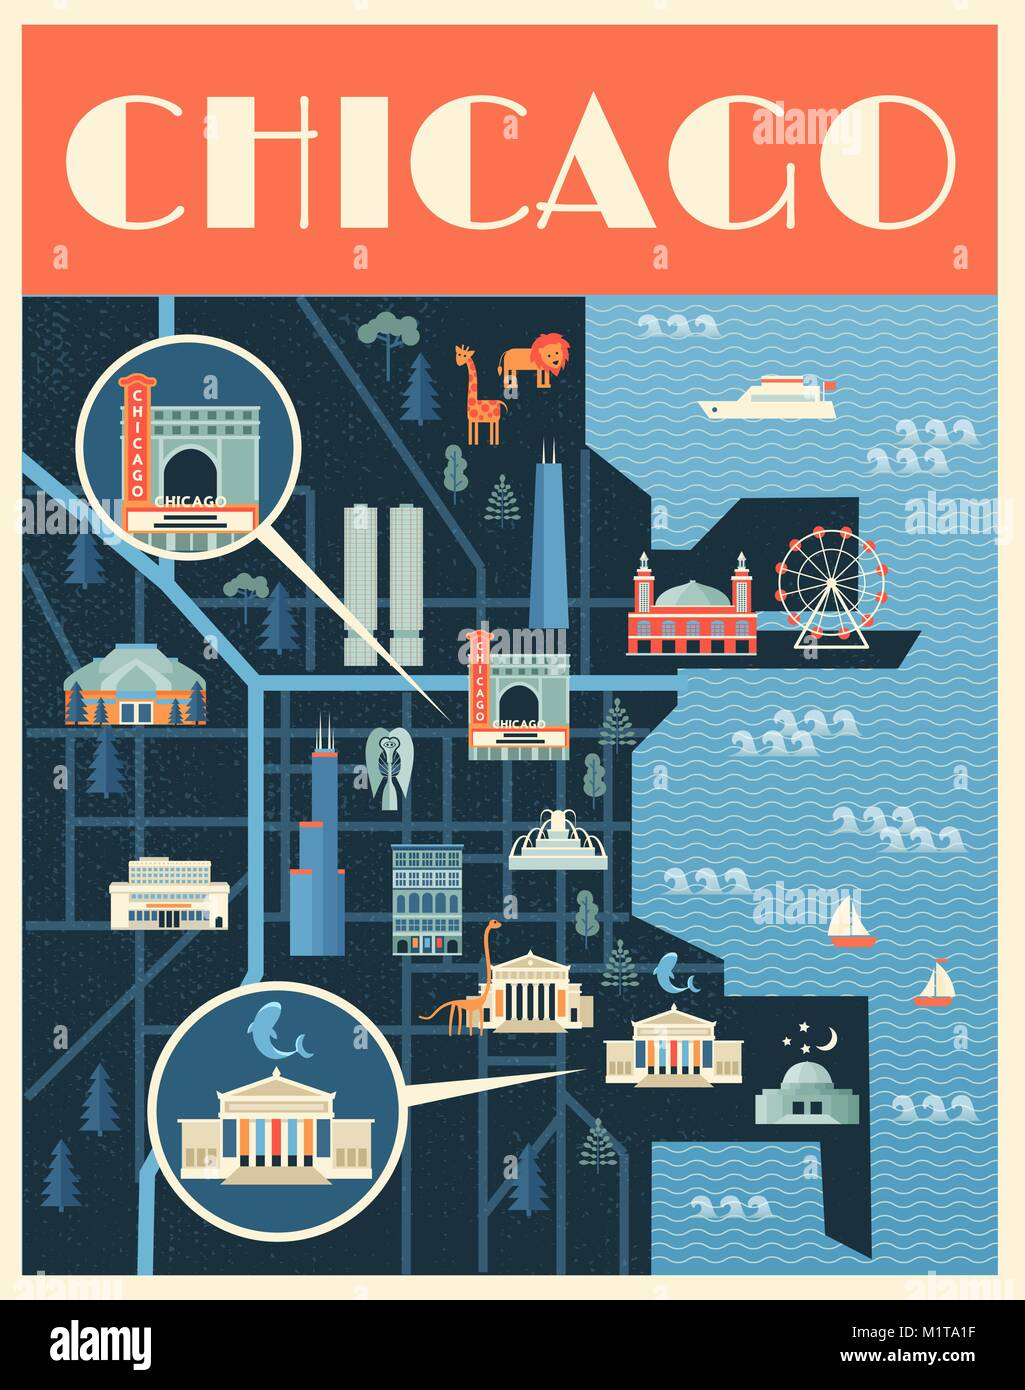 Chicago Museums Map Vector poster illustration of map with landmarks of Chicago